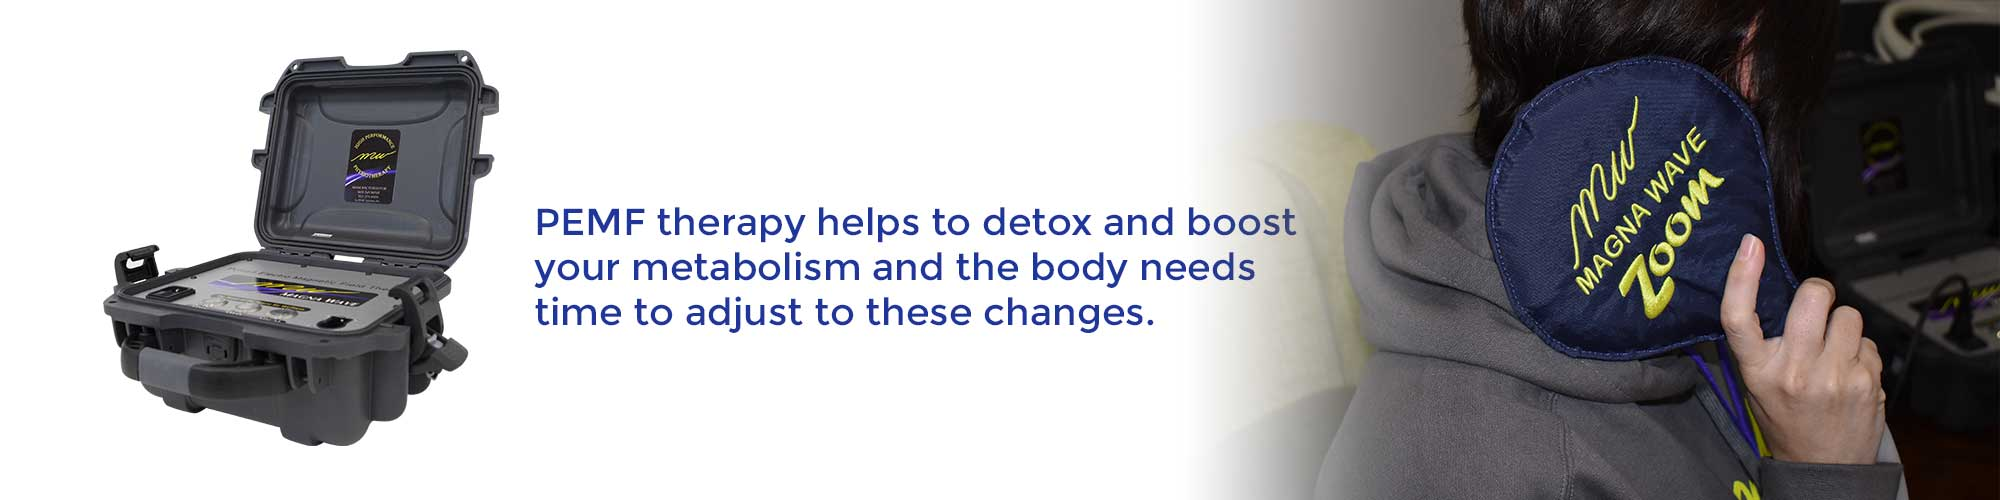 PEMF therapy helps to detox and boost your metabolism and the body needs time to adjust to these changes.